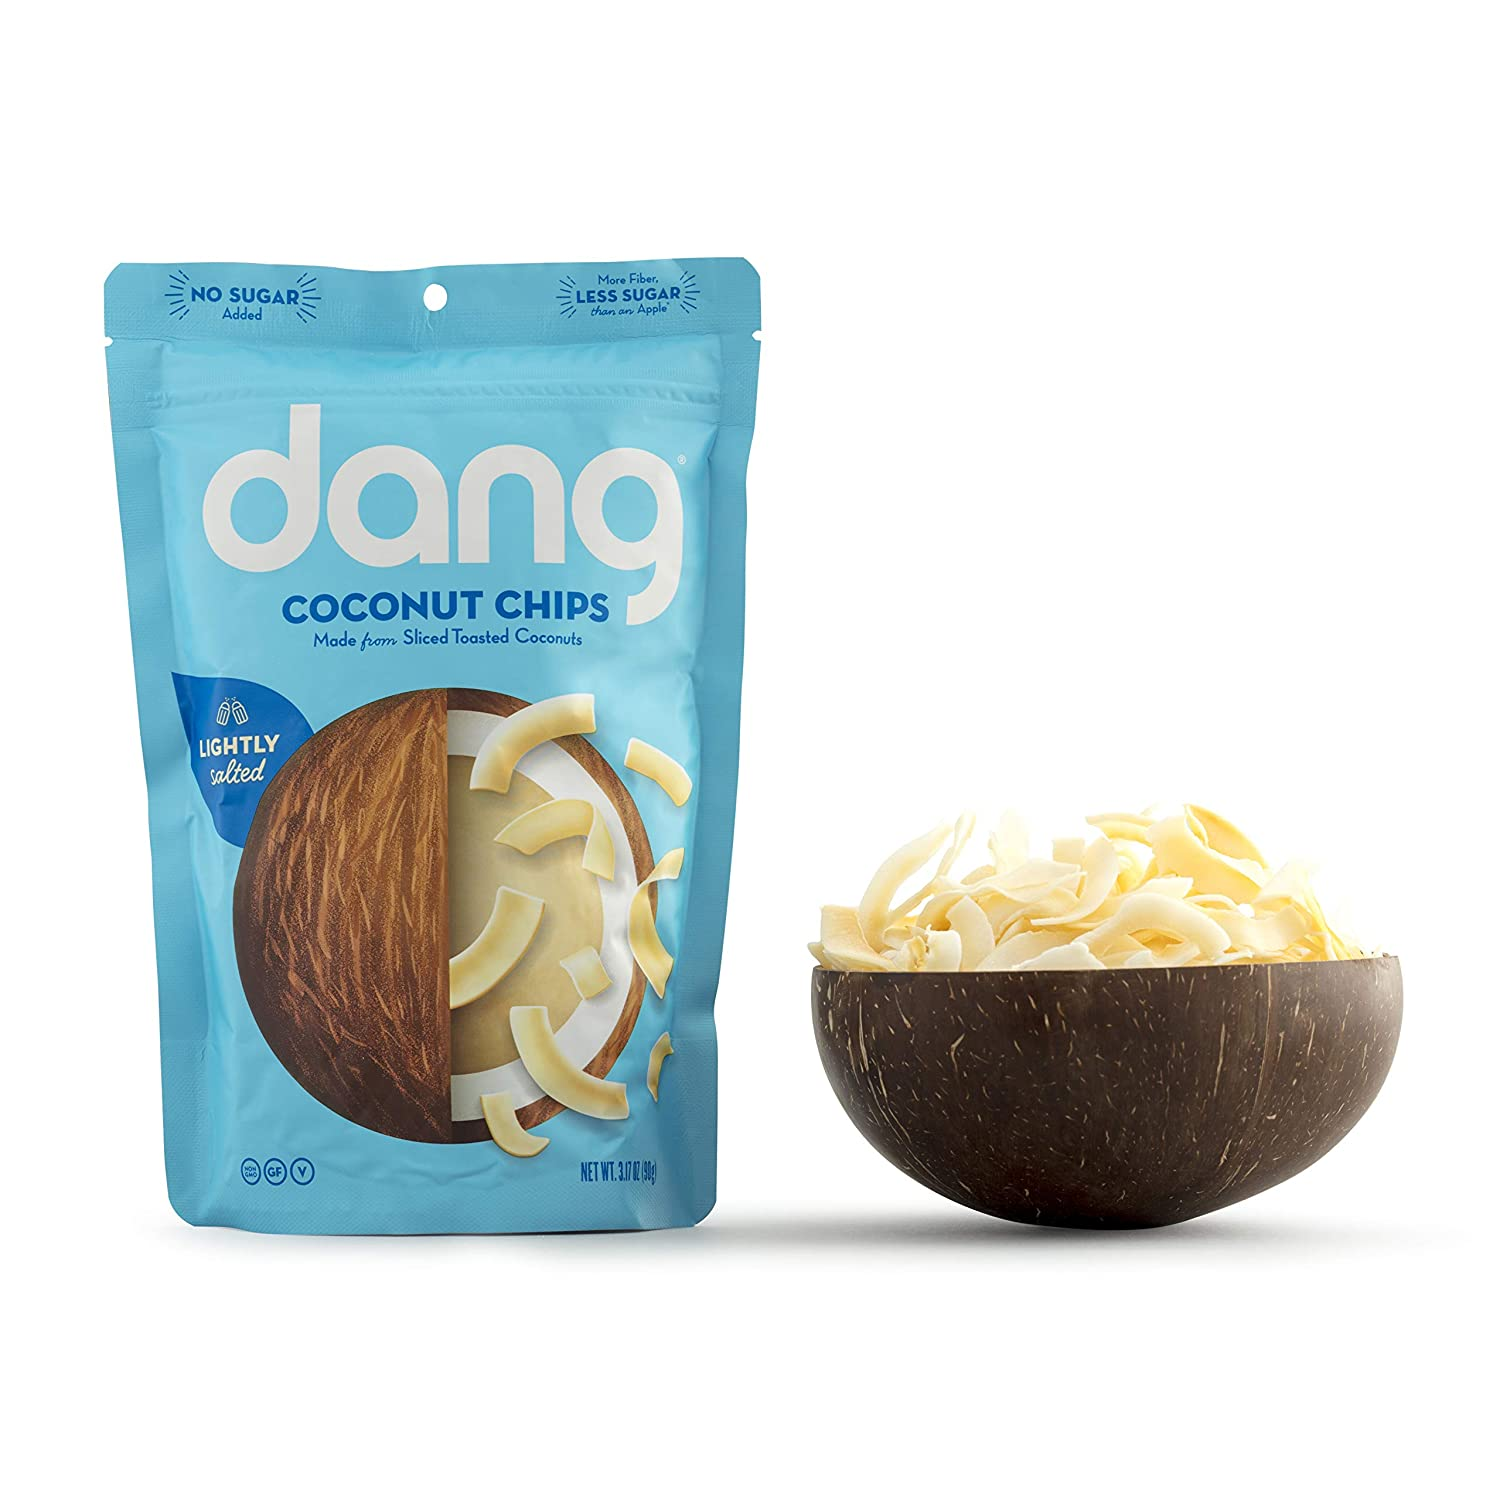 Dang Keto Toasted Coconut Chips  Lightly Salted Unsweetened 1 Pack  Keto Certified, Vegan, Gluten Free, Paleo Friendly, Non GMO, Unsweetened Healthy Snacks Made with Whole Foods 3.17Oz Resealable Bags